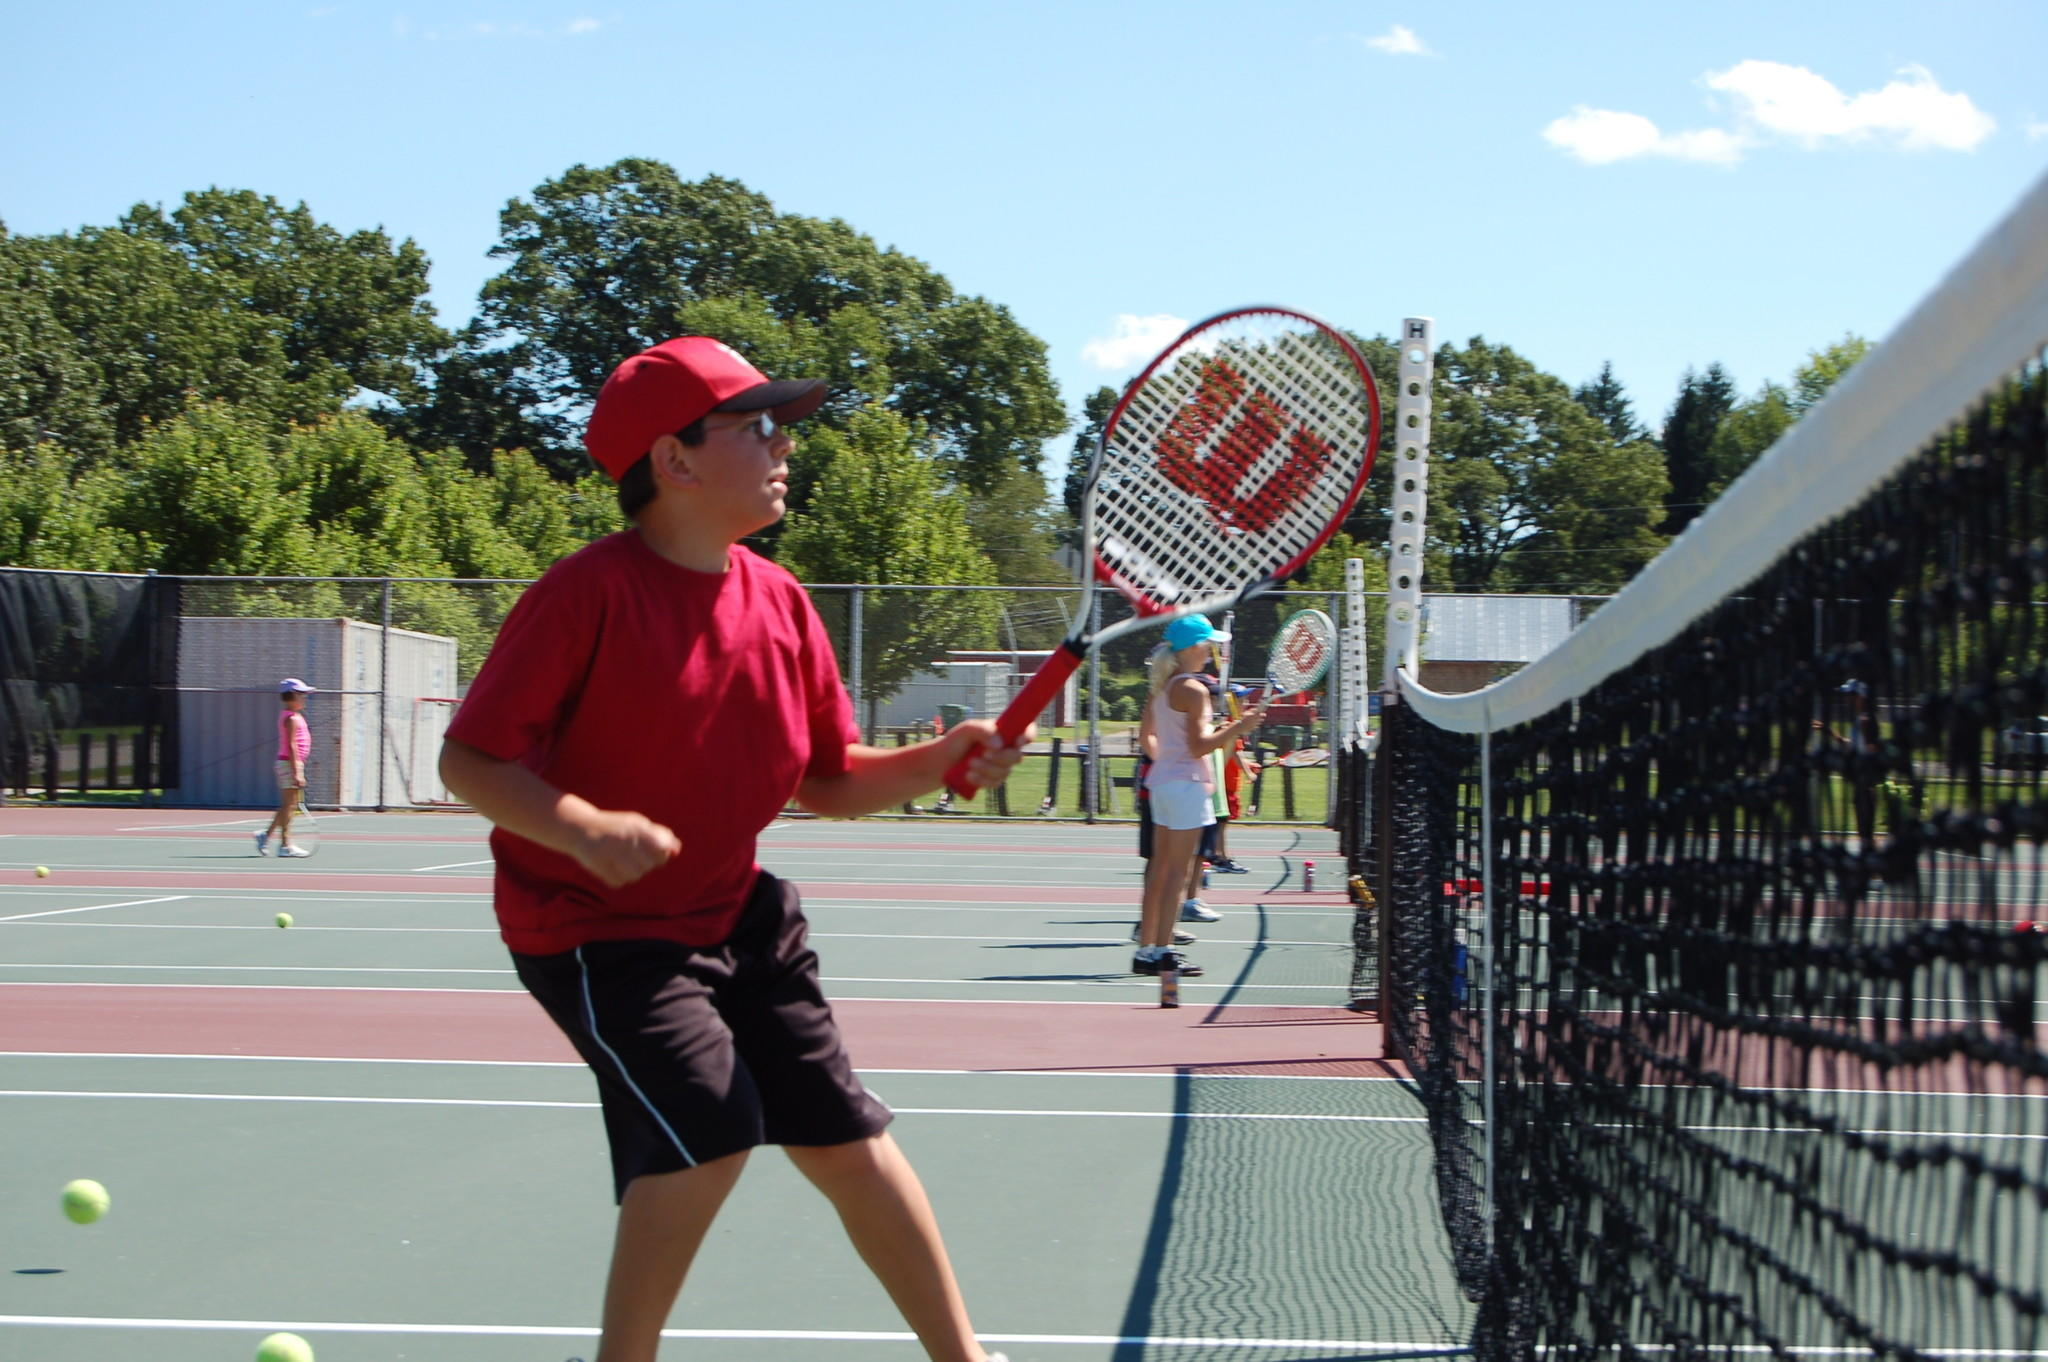 Parks and Recreation Department to run a free tennis clinic.